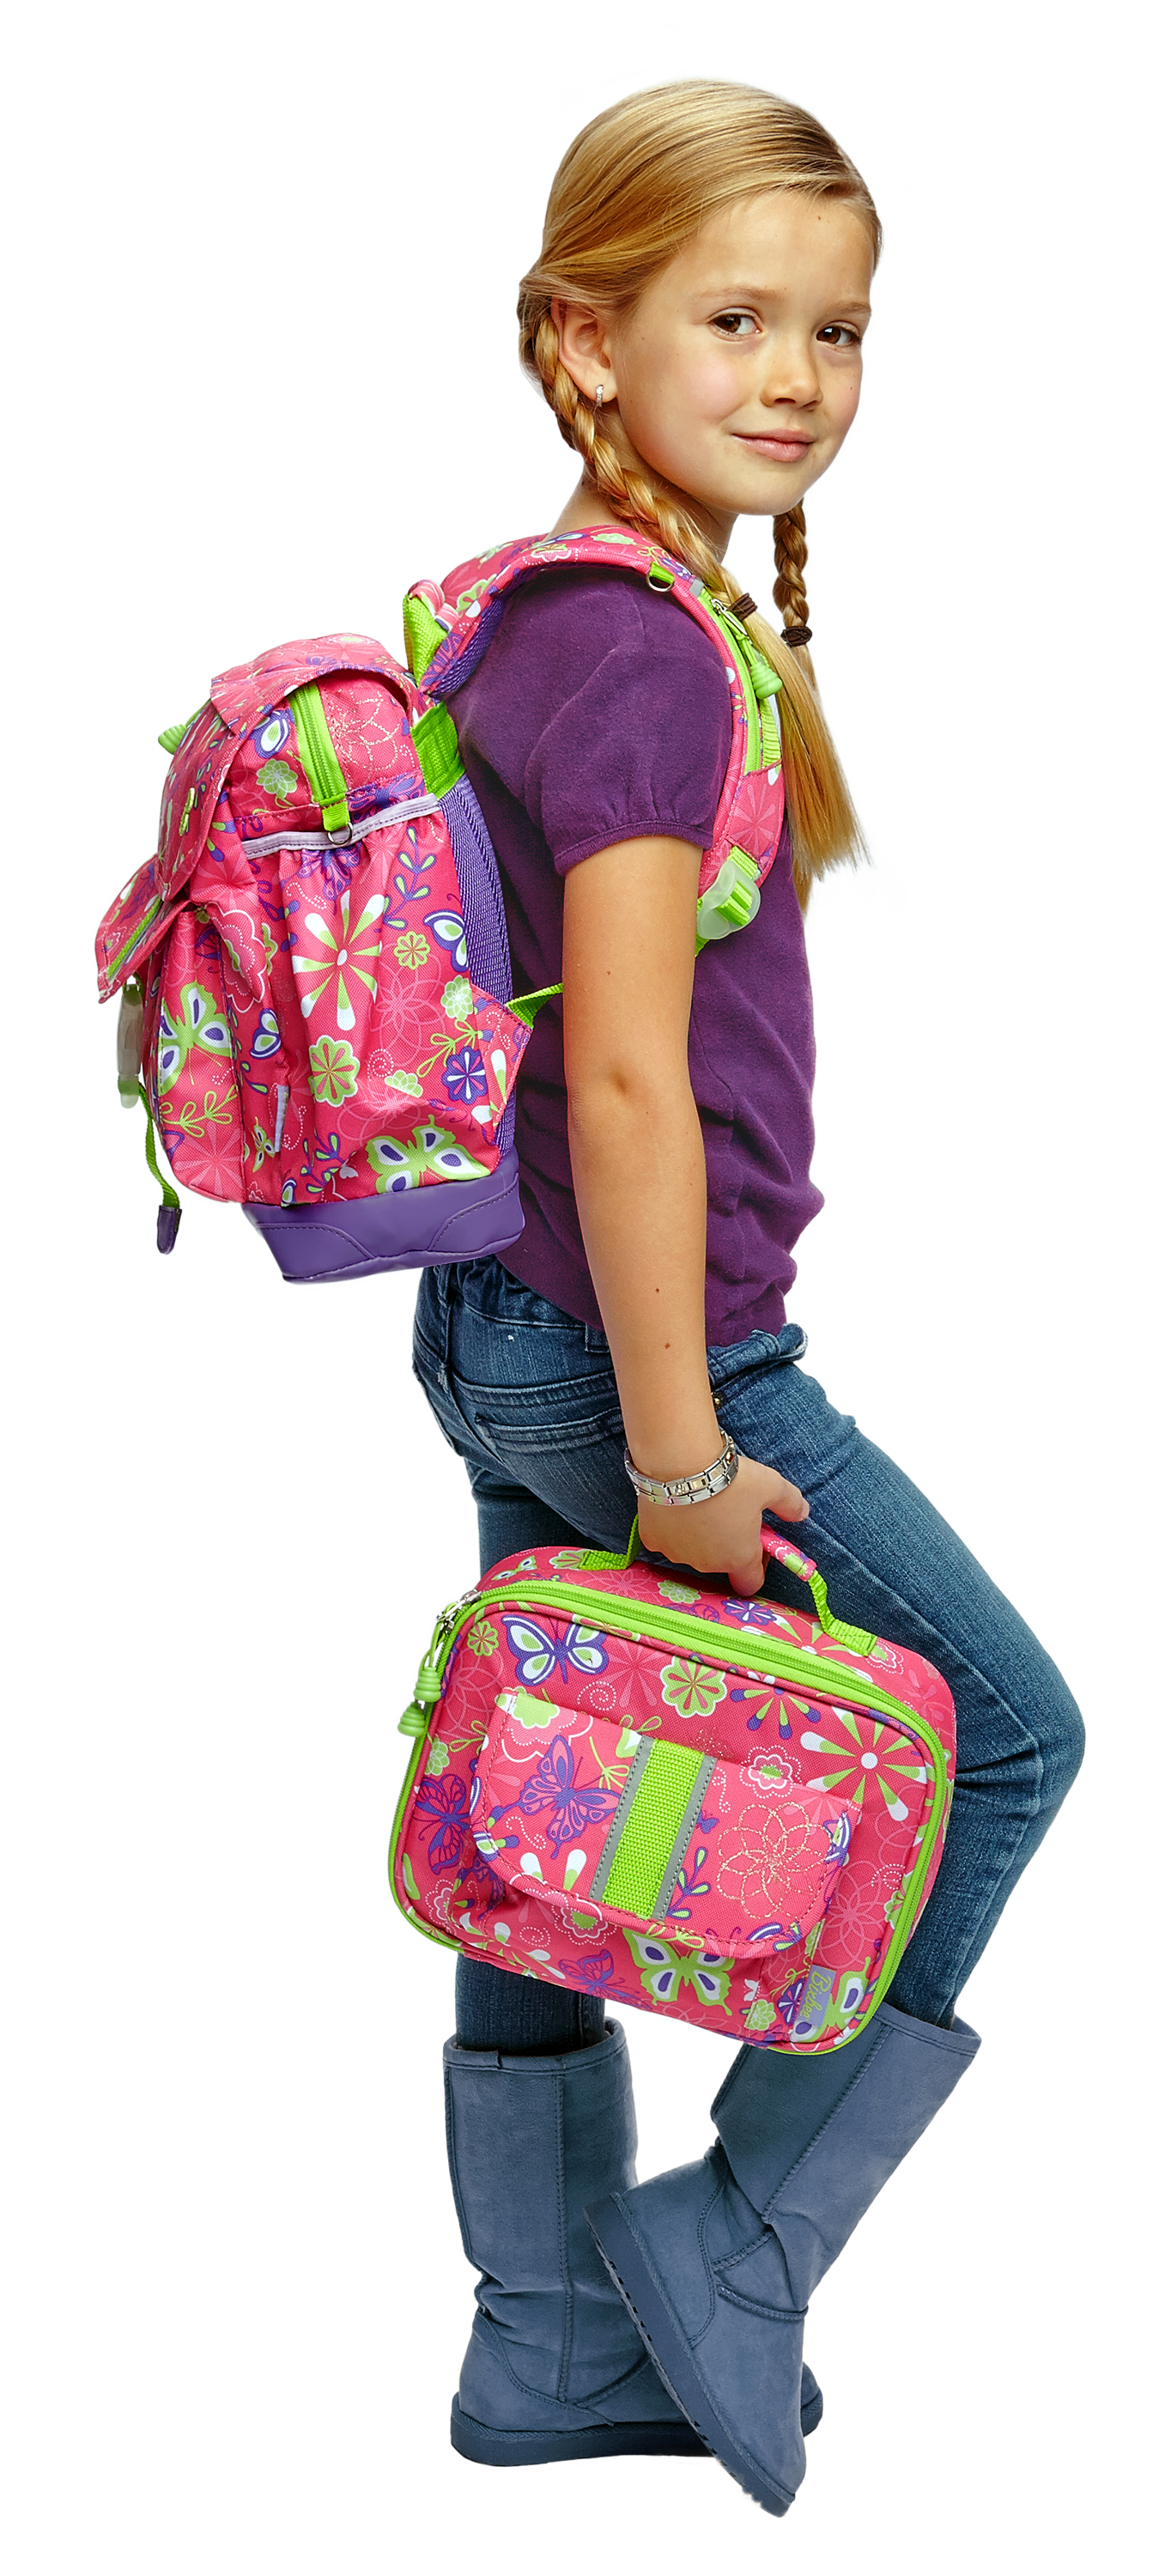 b9c7fb426291 Medium Size Backpack and Lunchbox